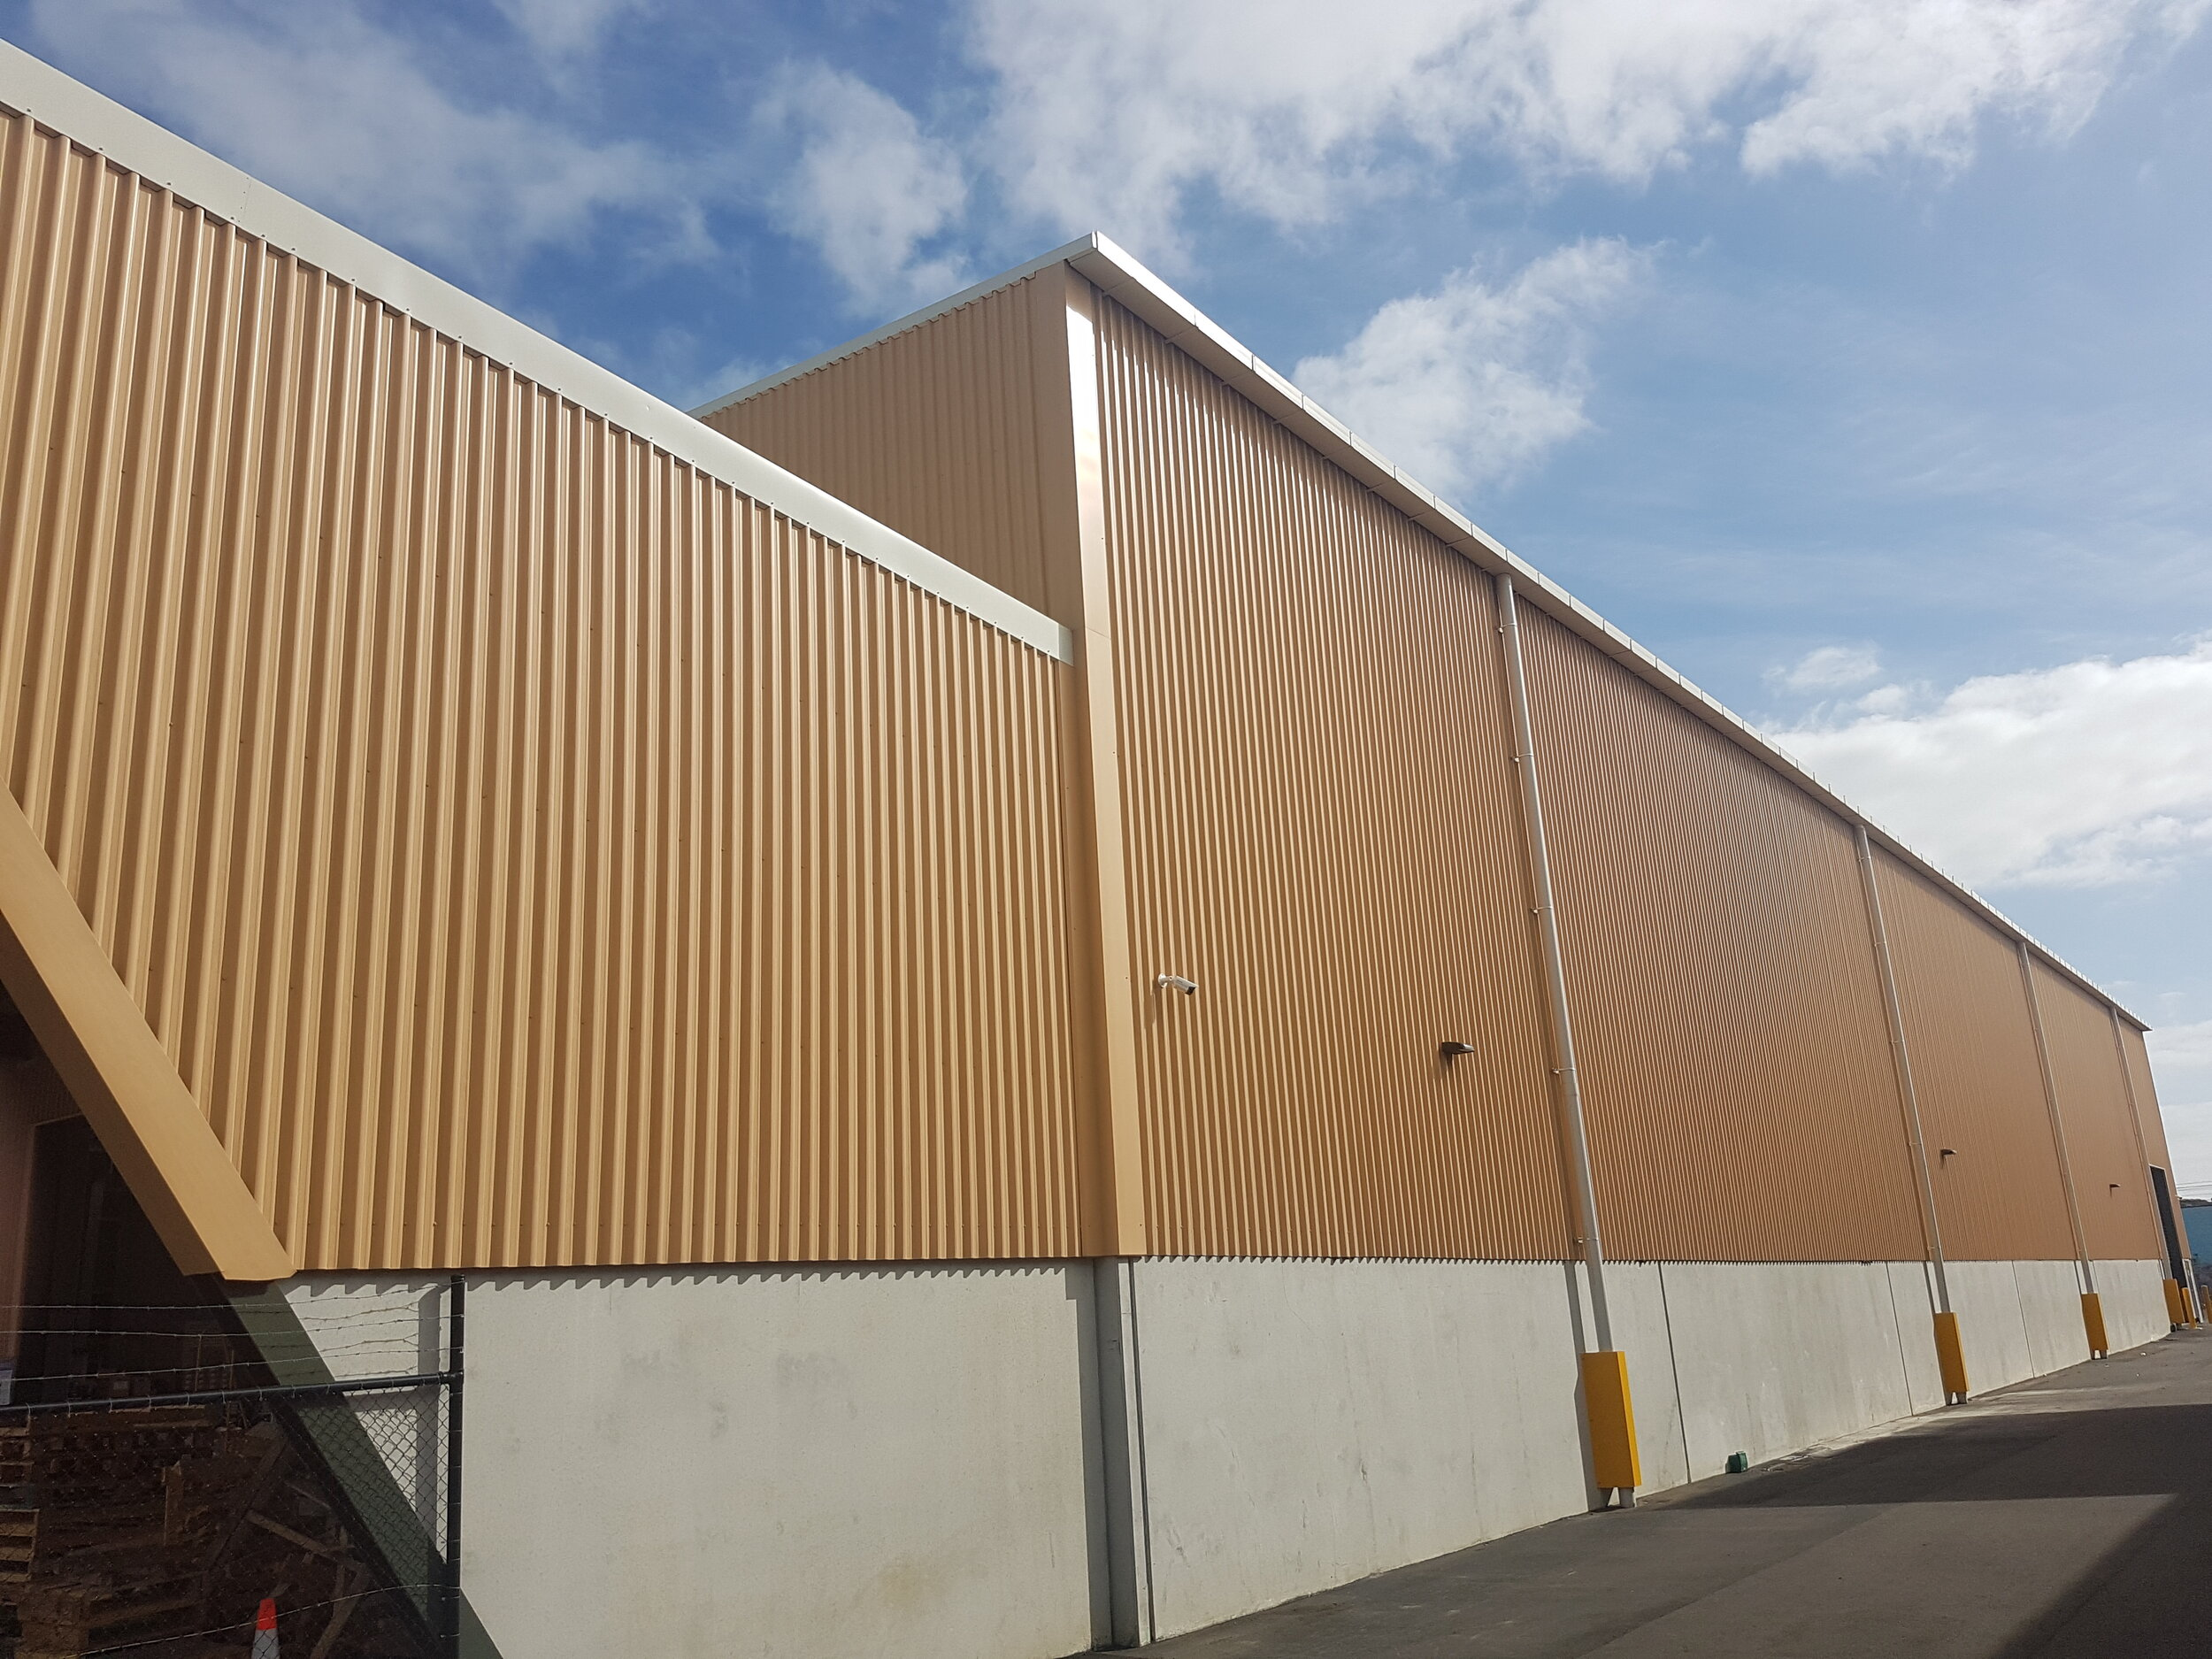 Commercial Gallery Trs Manukau The Roofing Store